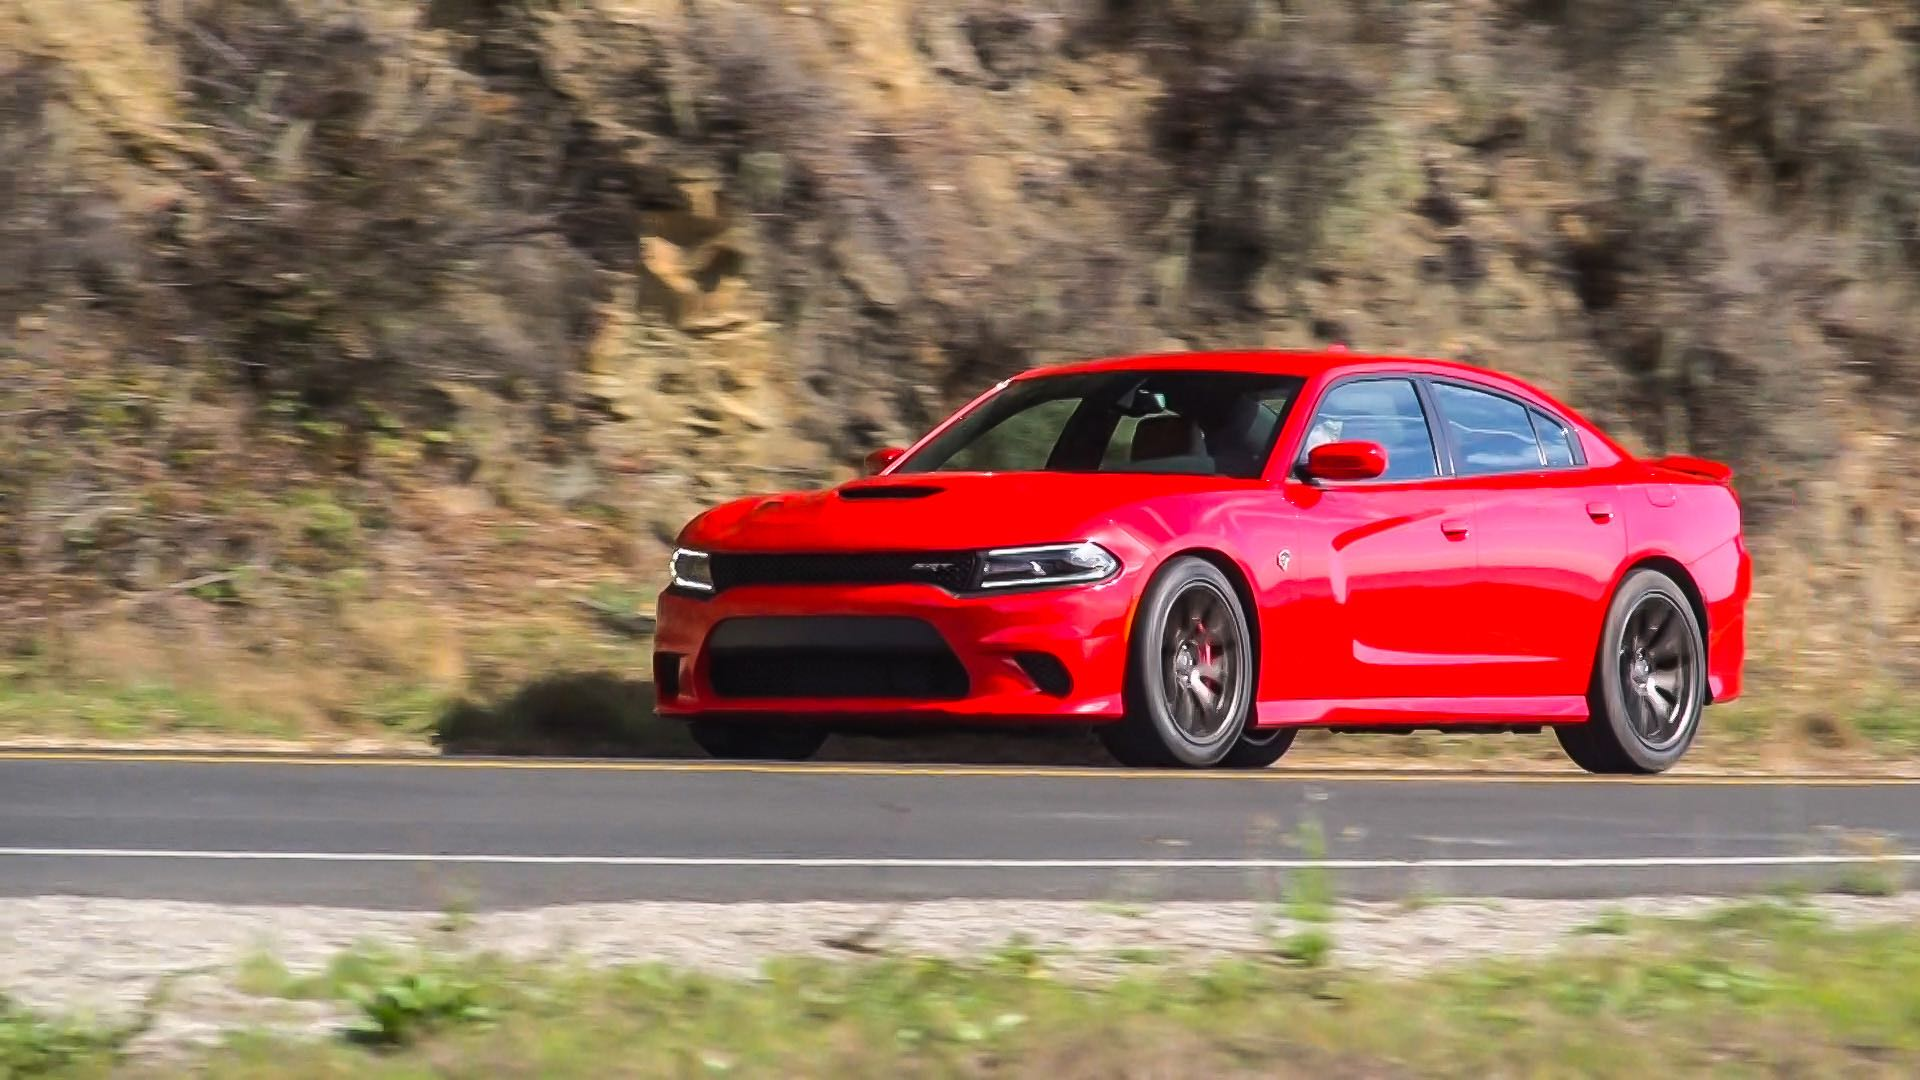 Dodge Charger Srt Hellcat Review Photos Caradvice